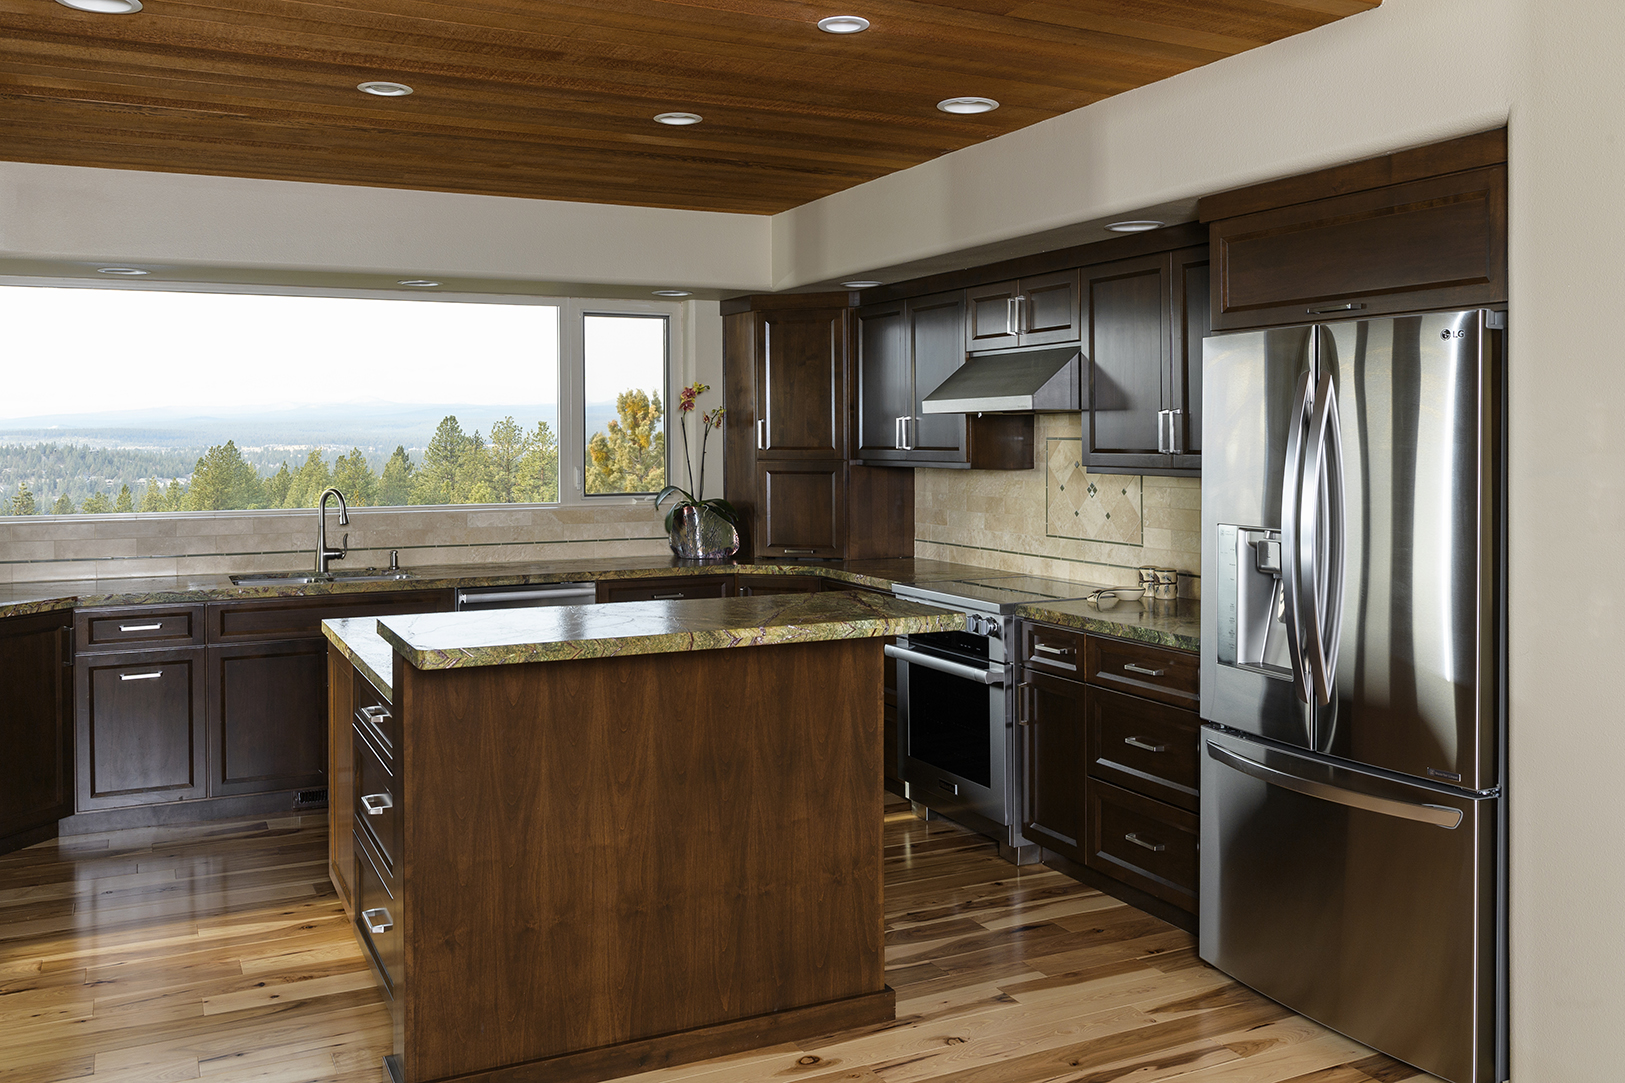 PGC-Building-design-bend-oregon-combs-remodel-7905-1625px